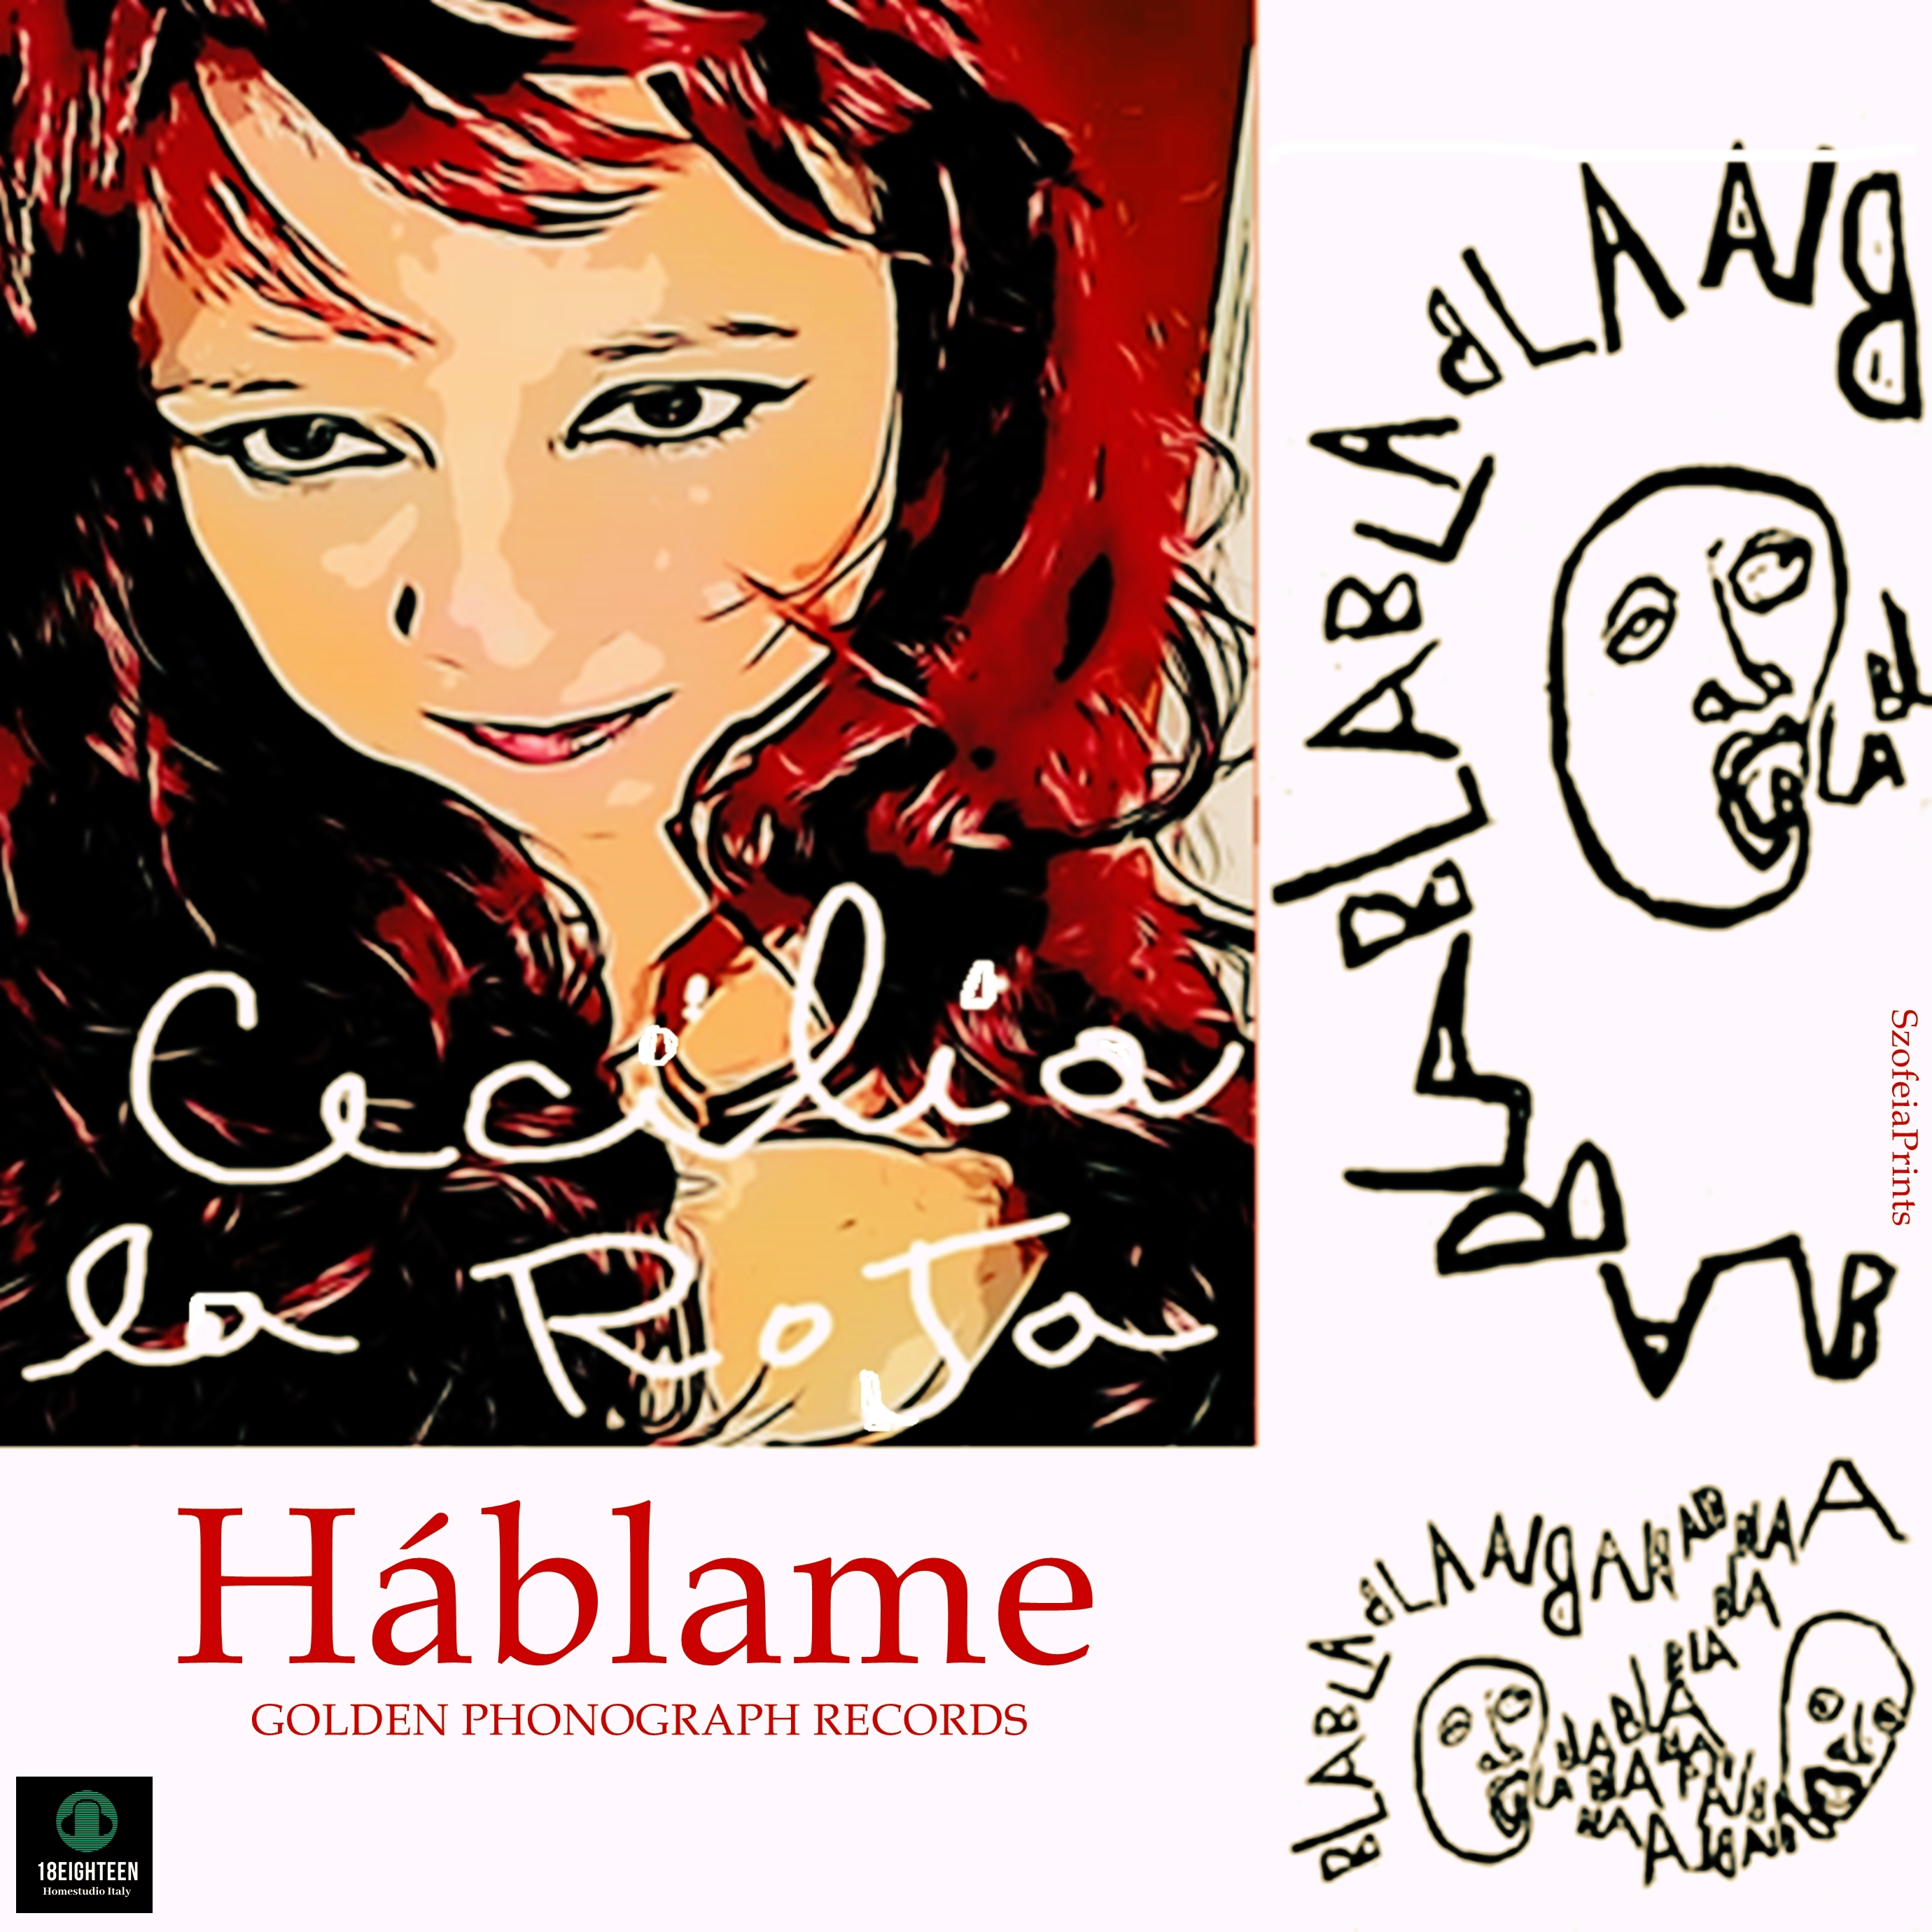 HABLAME (GOLDEN PHONOGRAPH Records) the new single track by Cecilia La Roja from June 12th 2021 on all radios